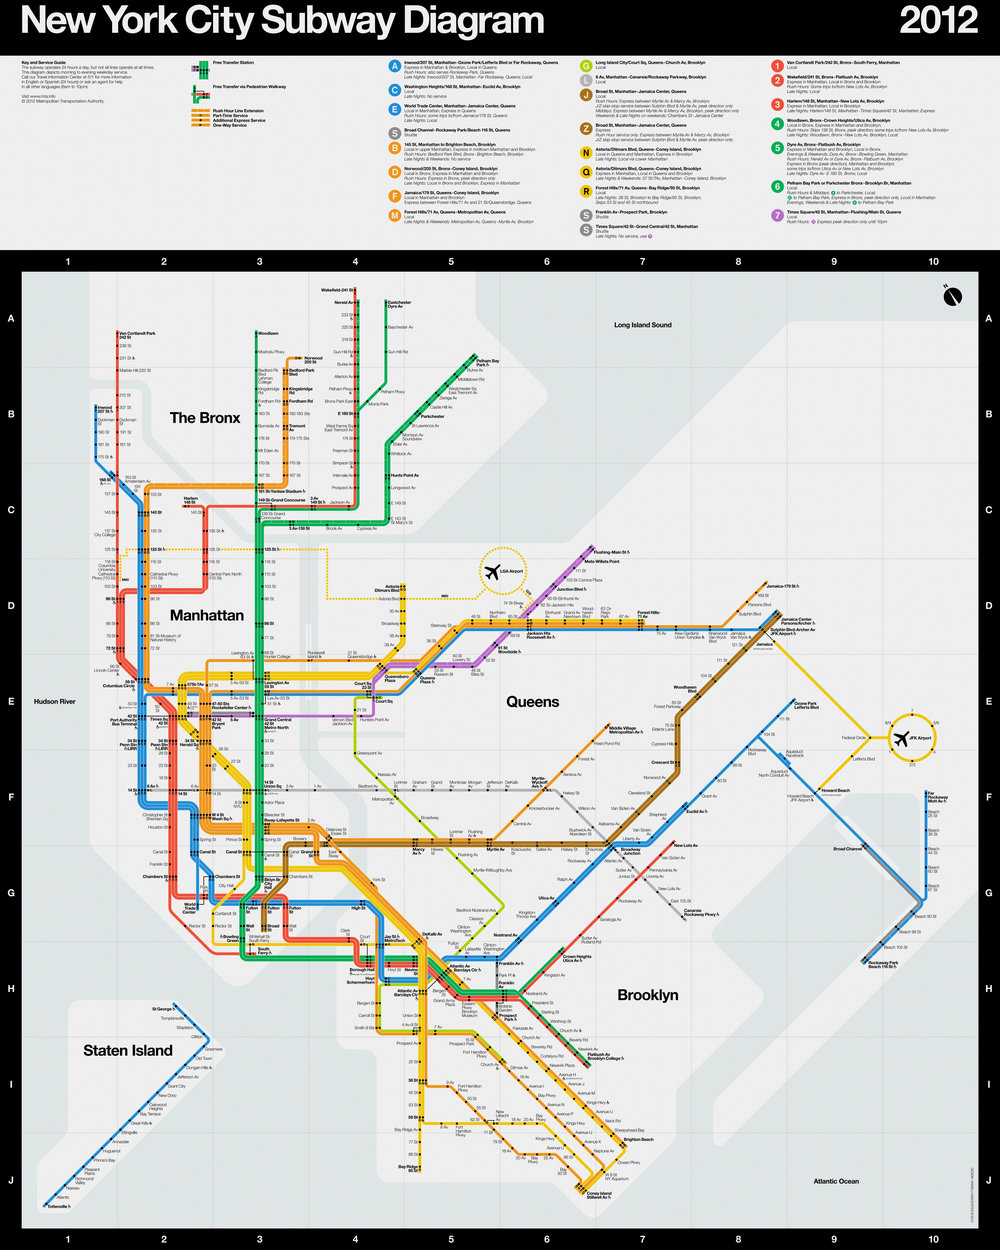 New York City Subway Diagram 2012.jpg